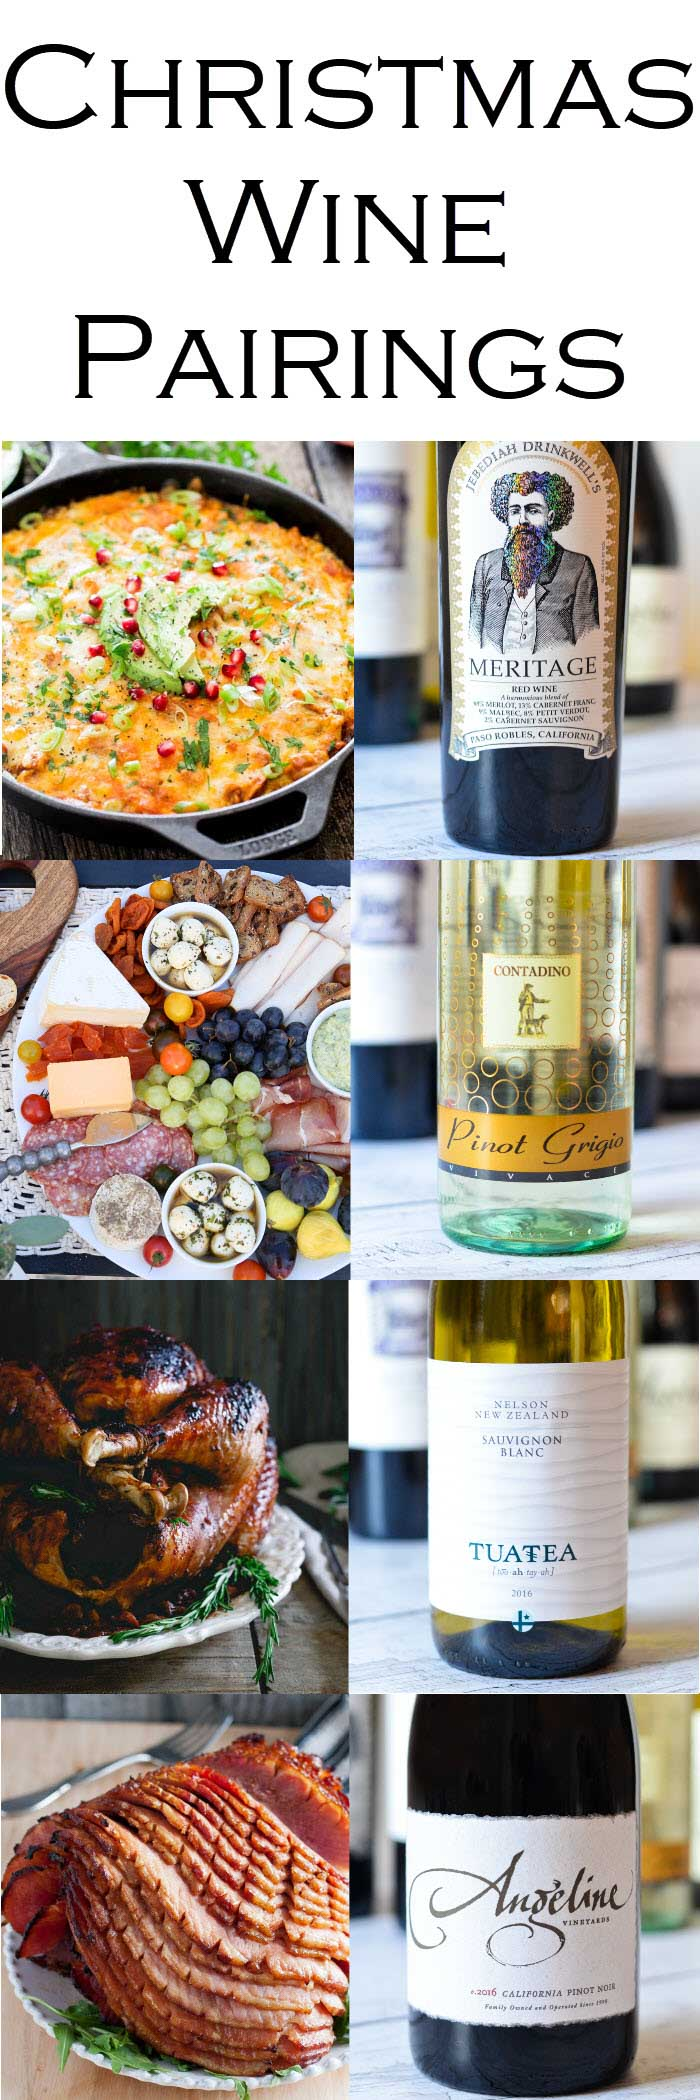 Holiday Christmas Wine Pairings for Every Meal #LMrecipes #Christmas #Christmasparty #Christmasdinner #Christmasbrunch #NewYearsbrunch #Hanukkah #Hanukkahdinner #holidayparty #wine #winepairings #foodblog #foodblogger